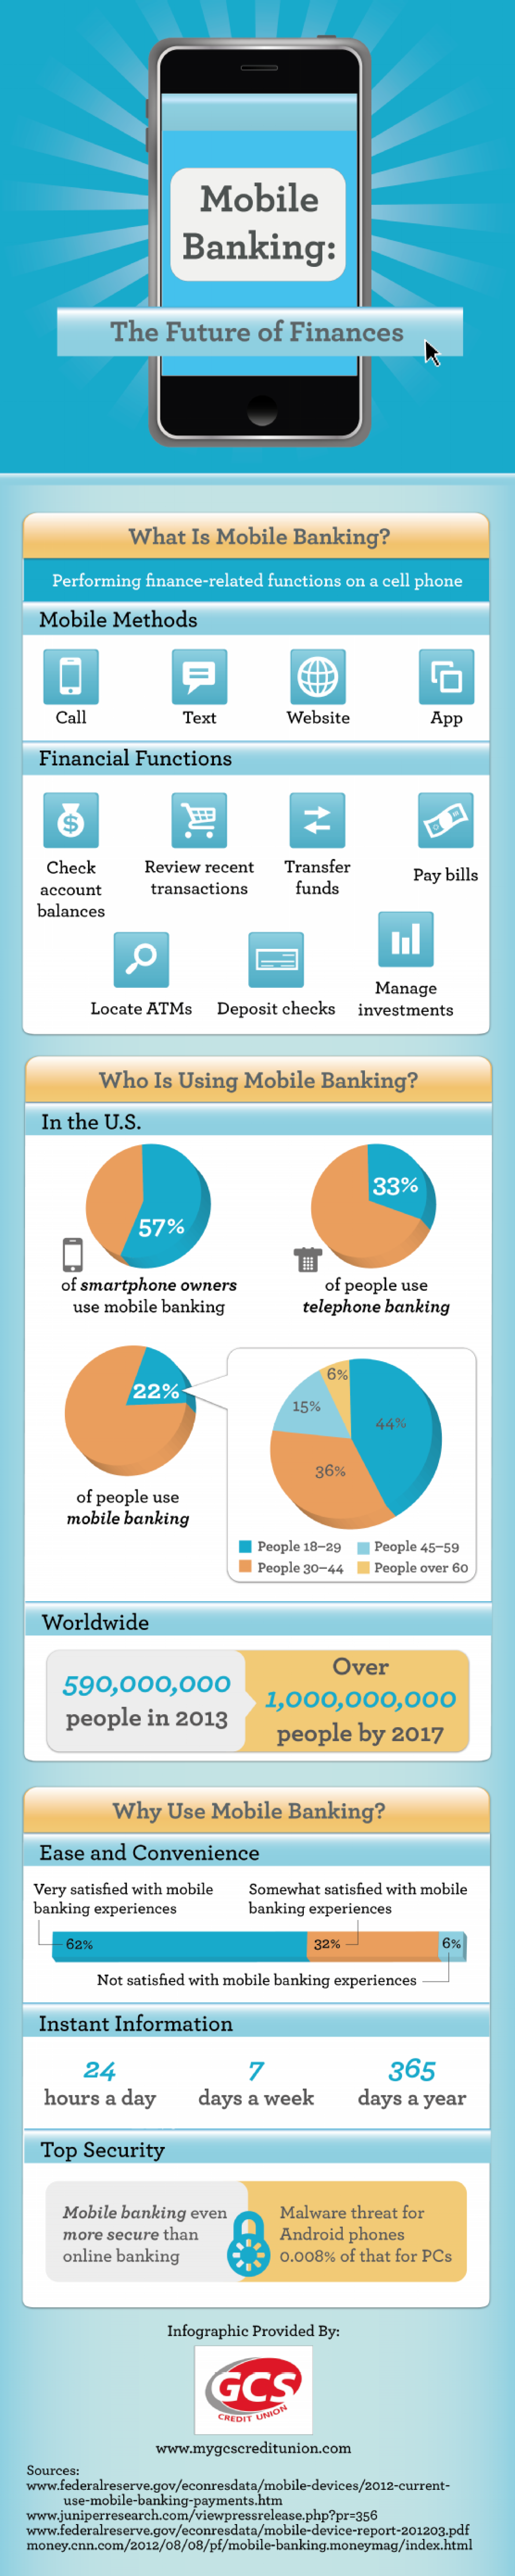 Mobile Banking: The Future of Finances Infographic